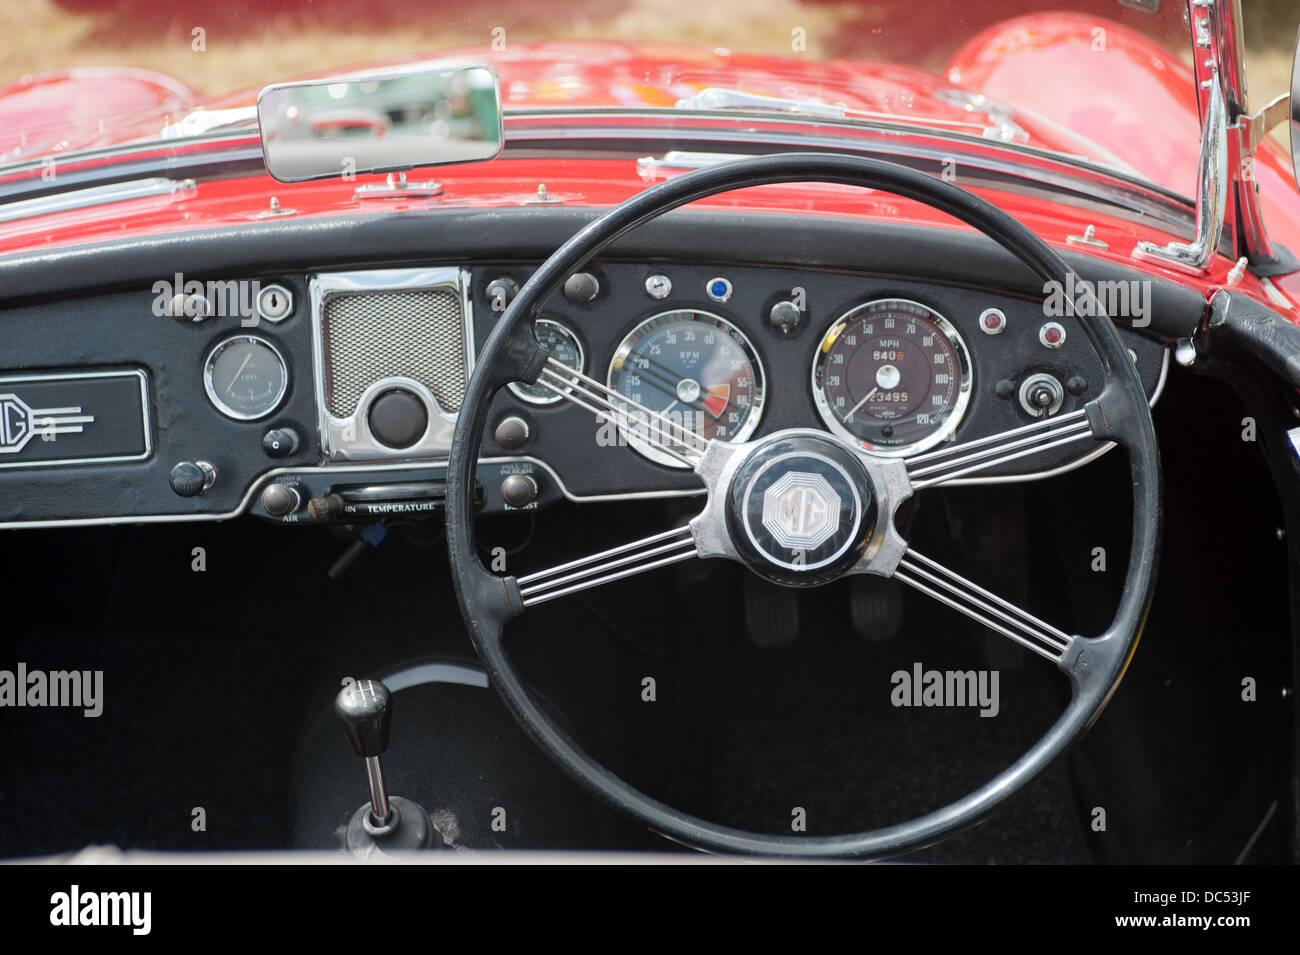 Classic Car Dashboard Switches